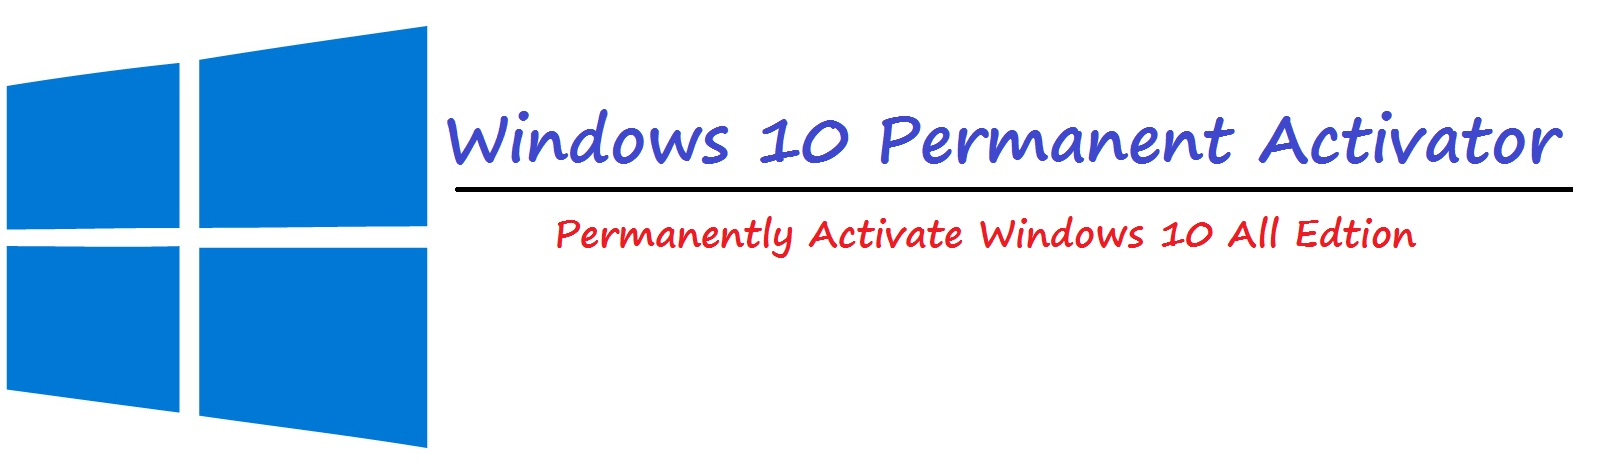 Windows 10 Permanent Activator 2017 Free Download